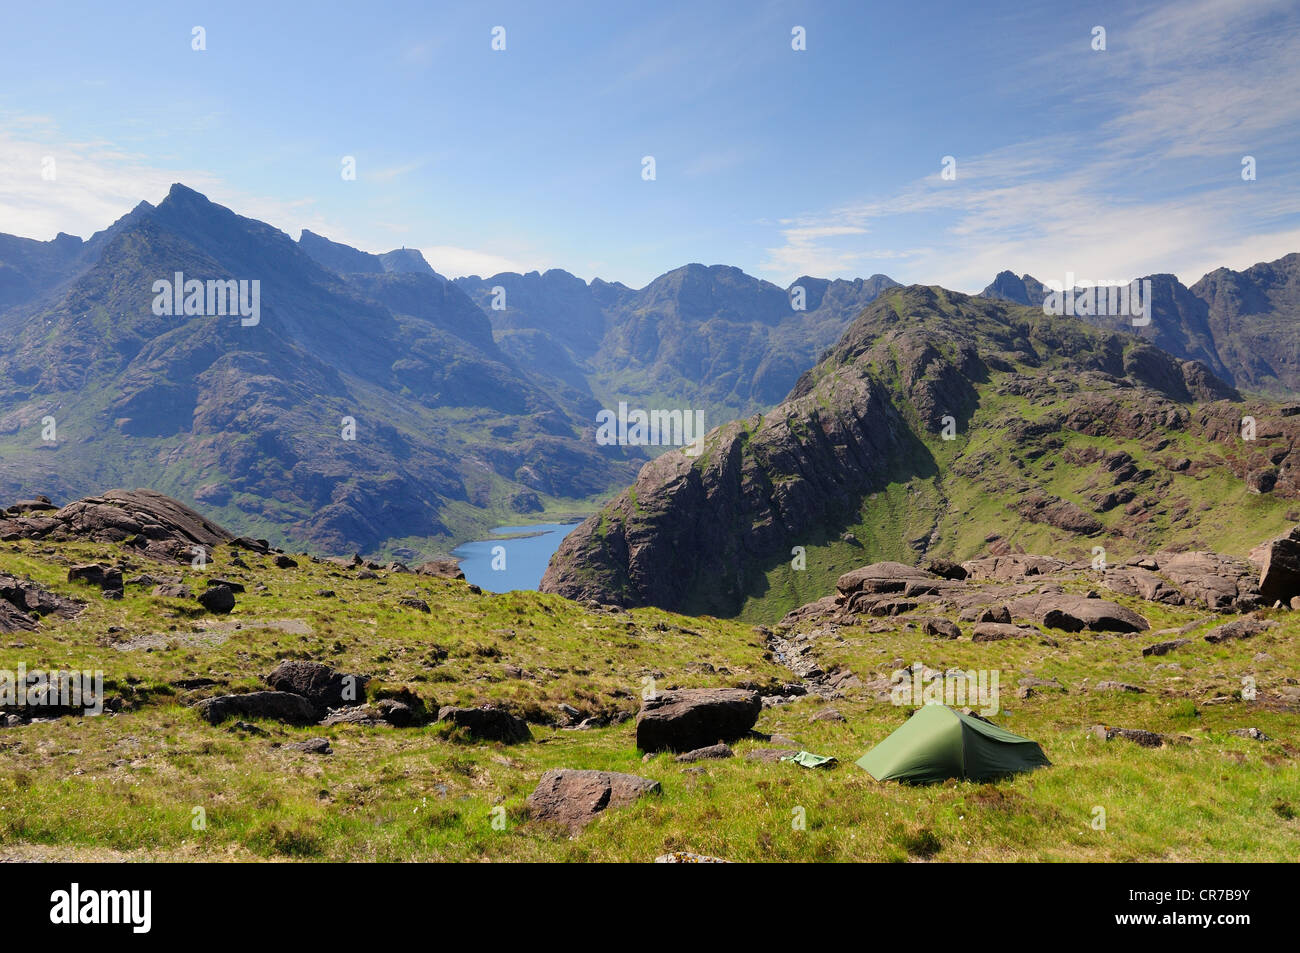 Wild camping on the Isle of Skye, with Loch Coruisk and the jagged Black Cuillin ridge in the background - Stock Image